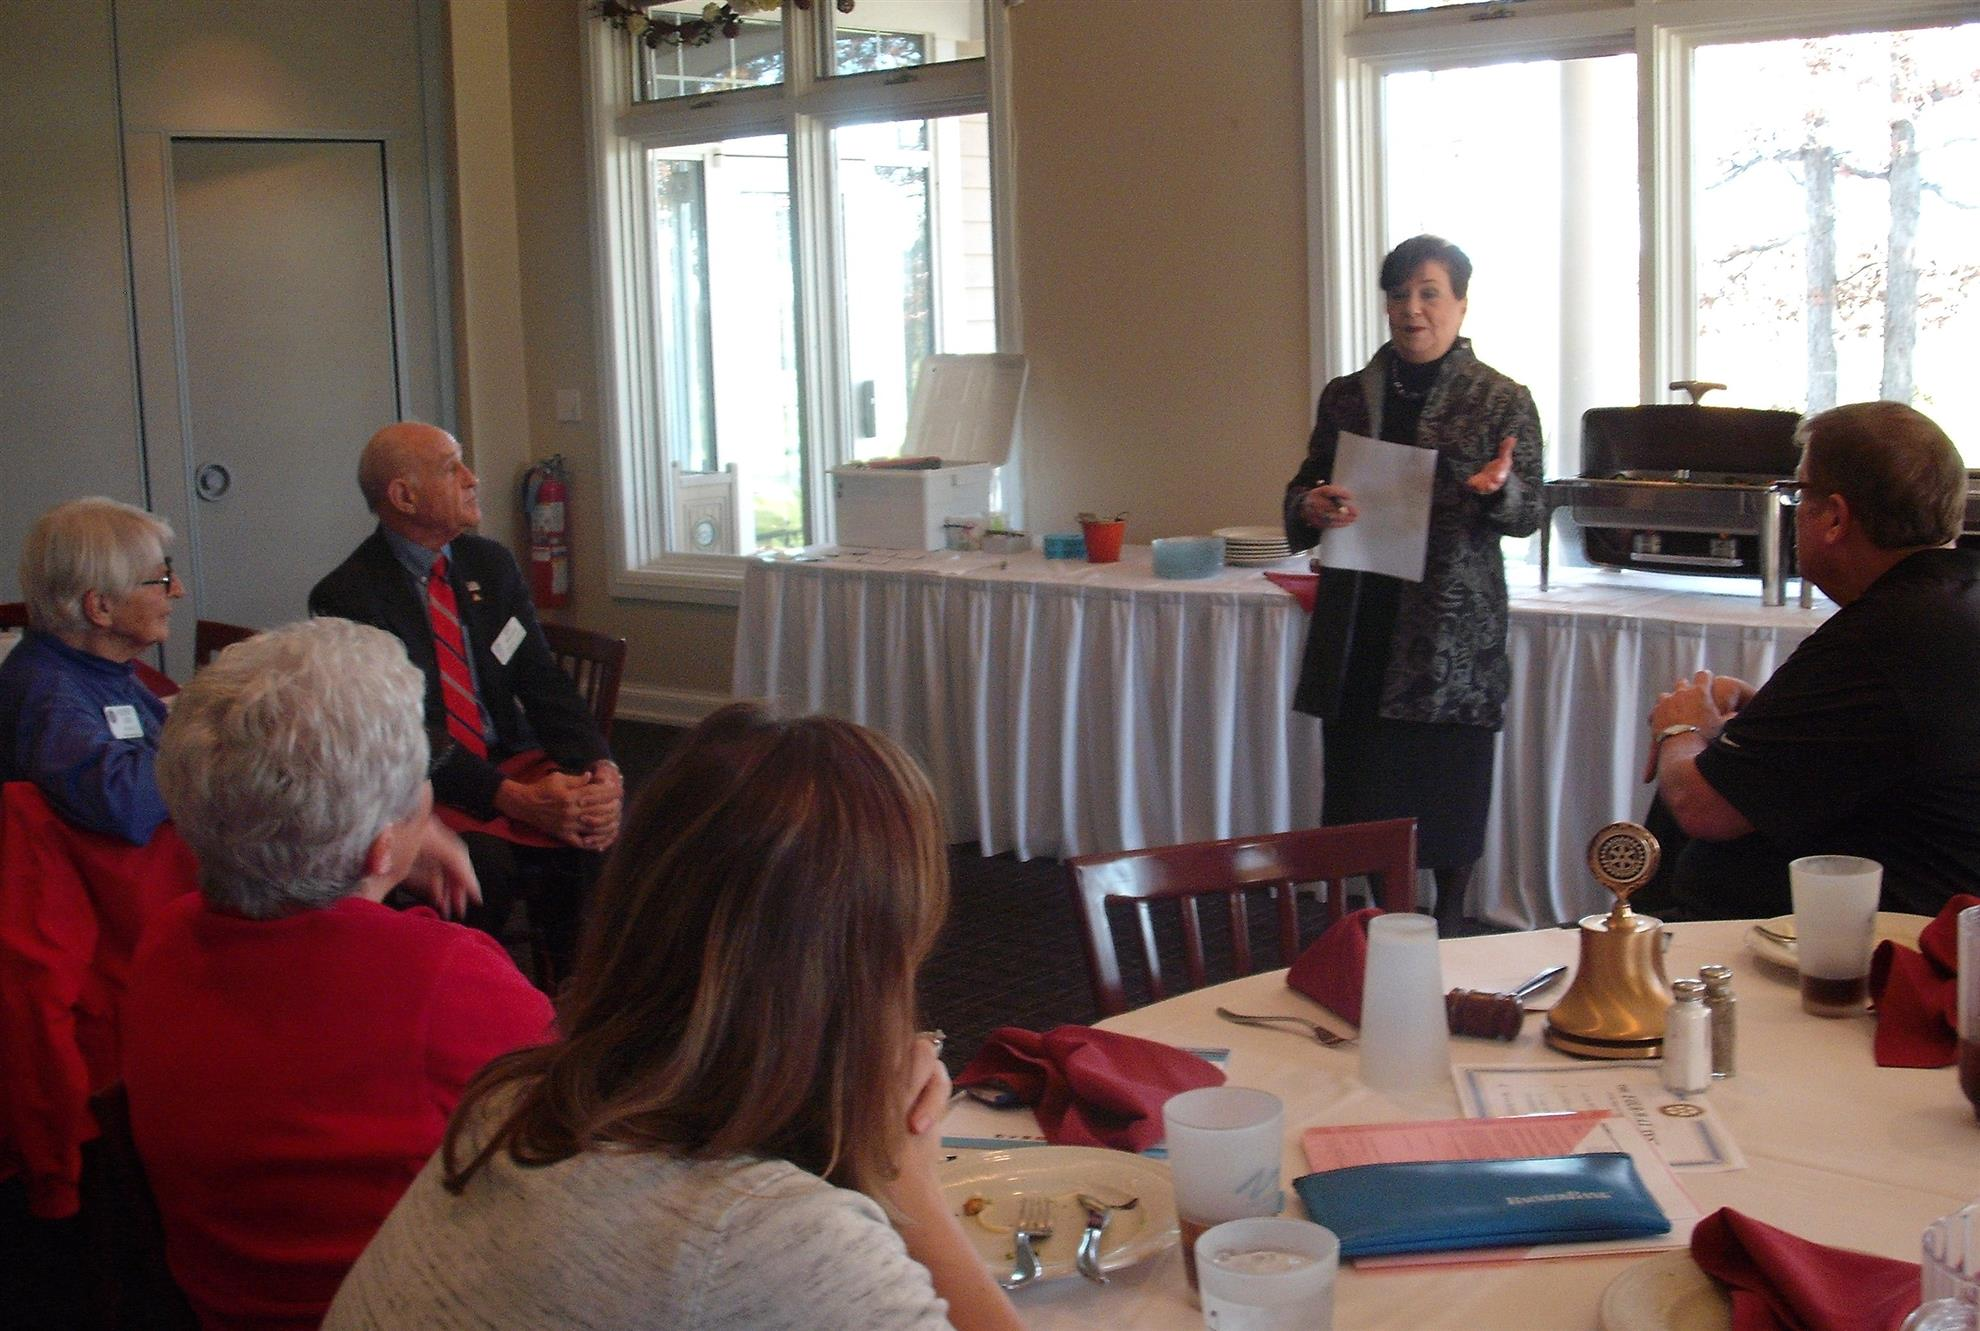 Gail Rust, New Berlin Rotary, Rotary Club of New Berlin